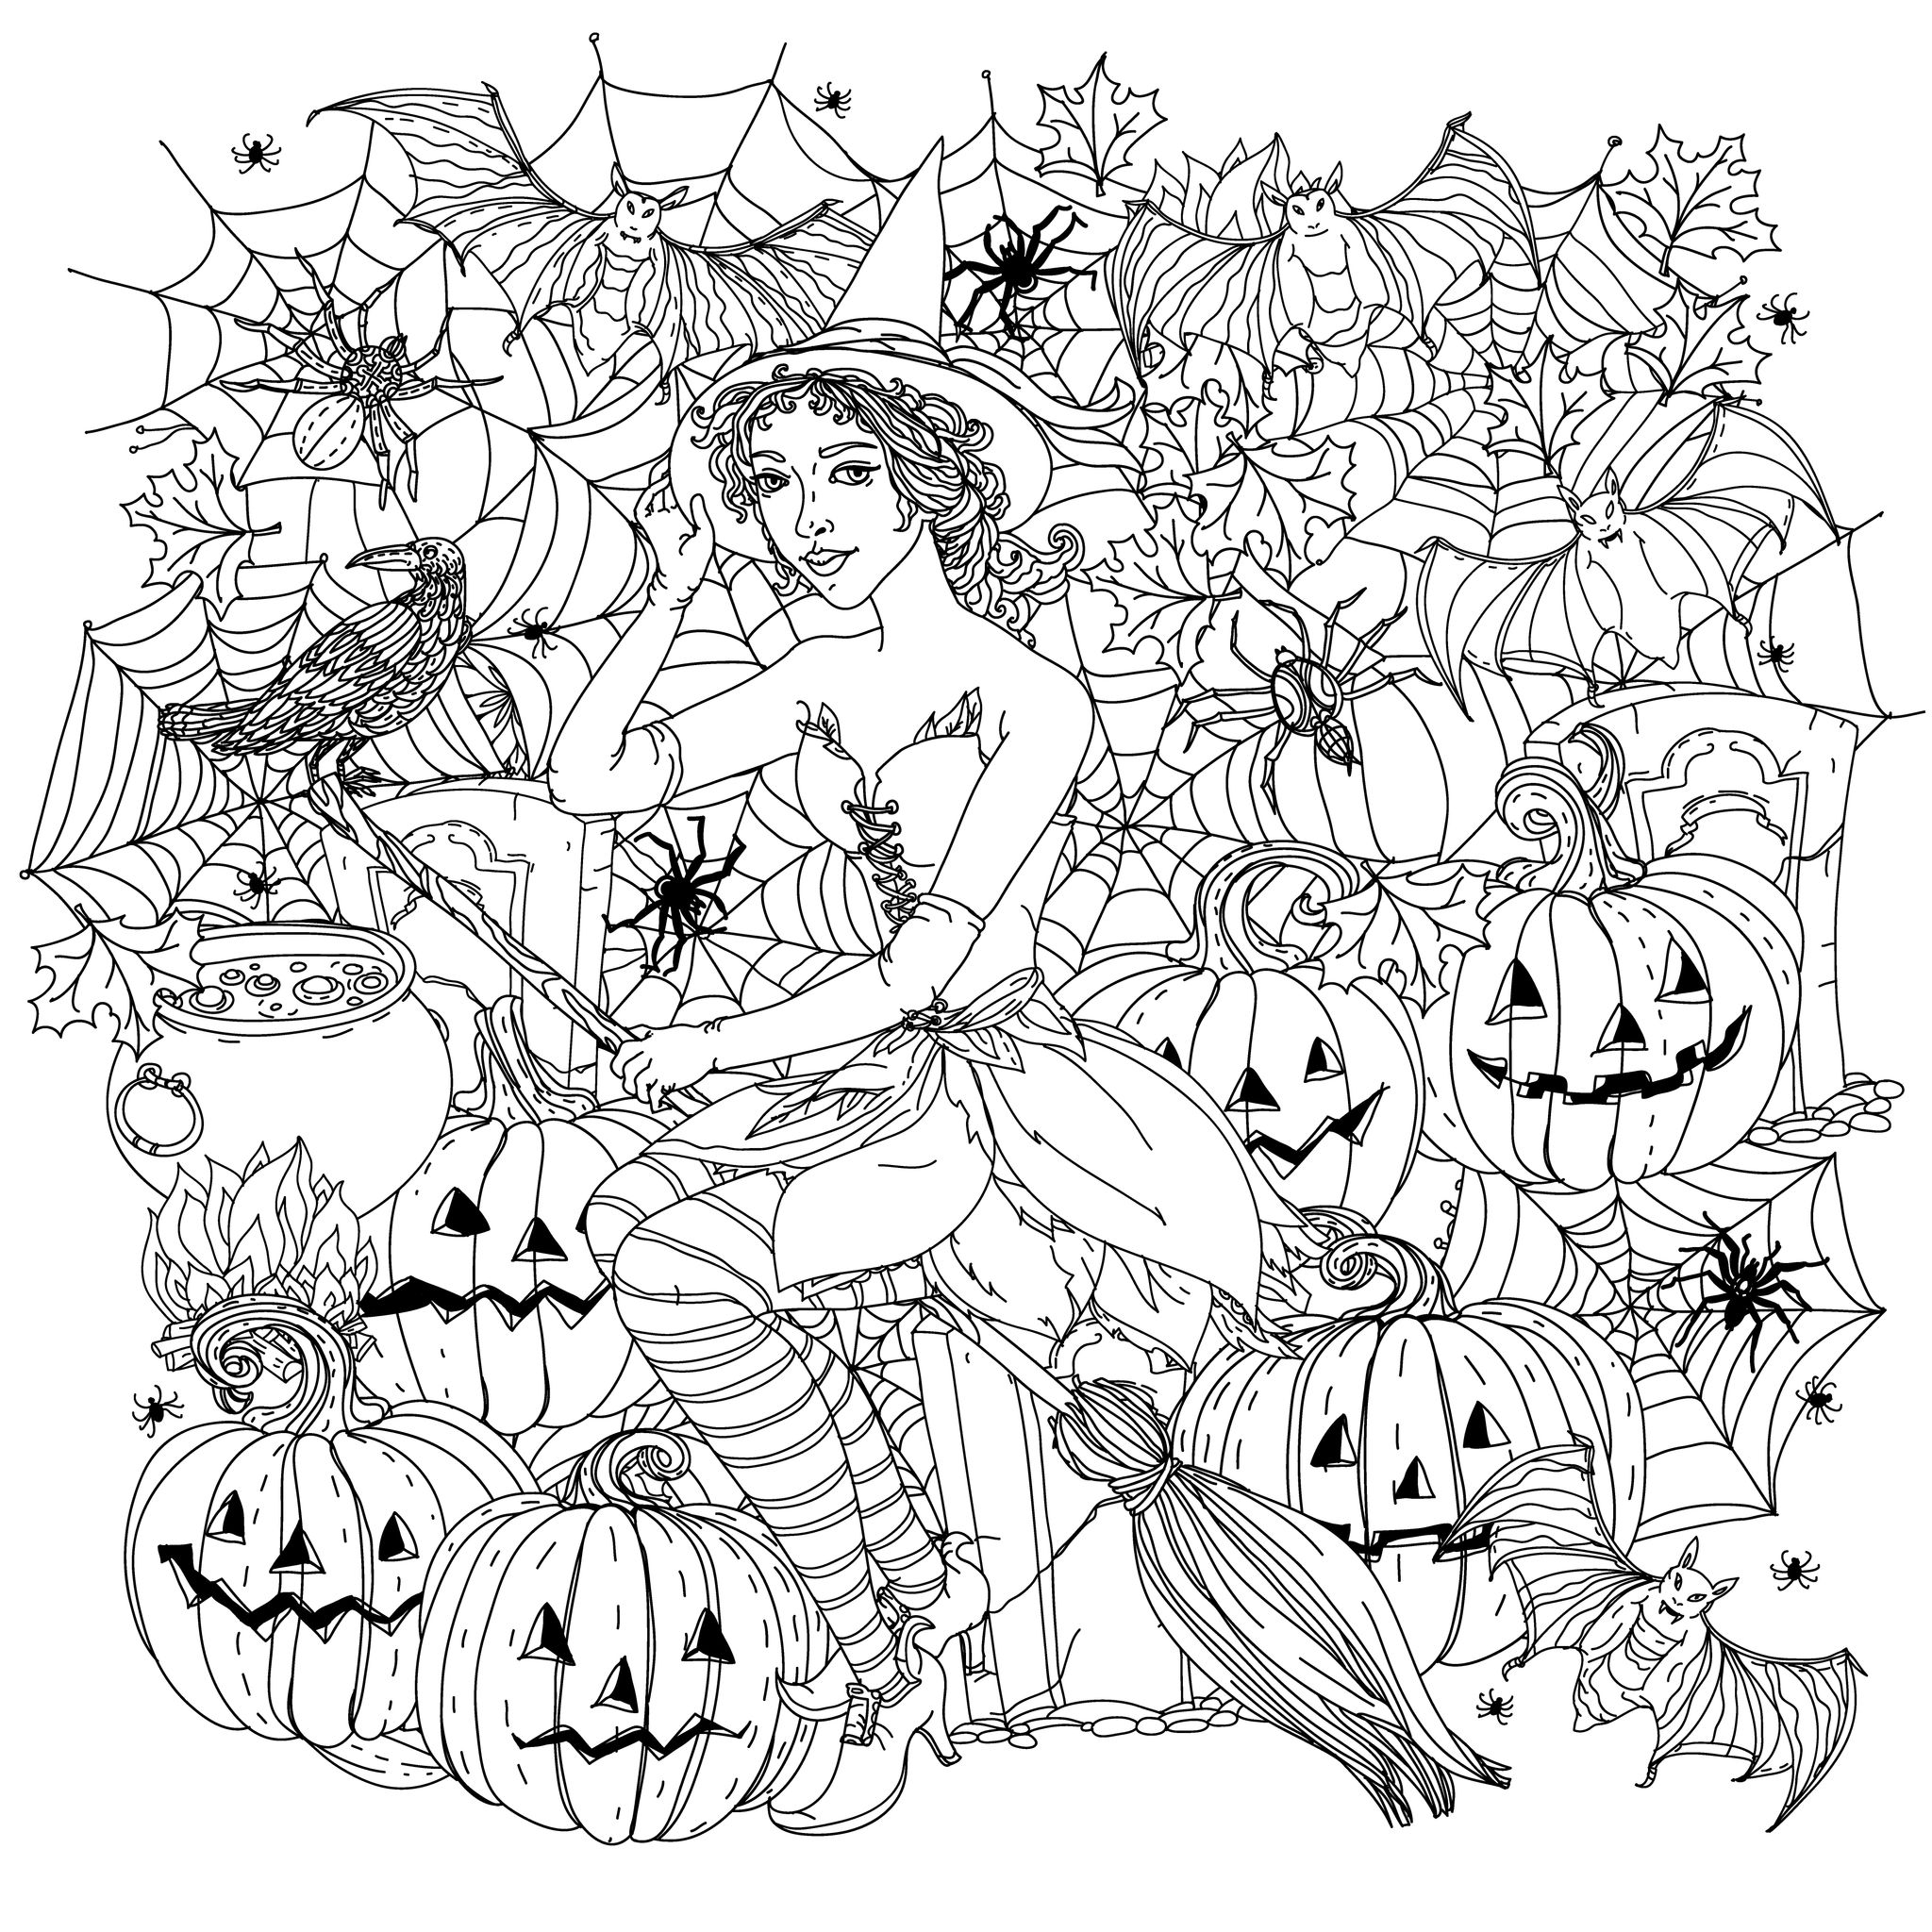 Coloring Page Halloween Witch With Pumpkins Incredible Fashion Woman Dressed Like A Crows Spiders And Other Decorations On